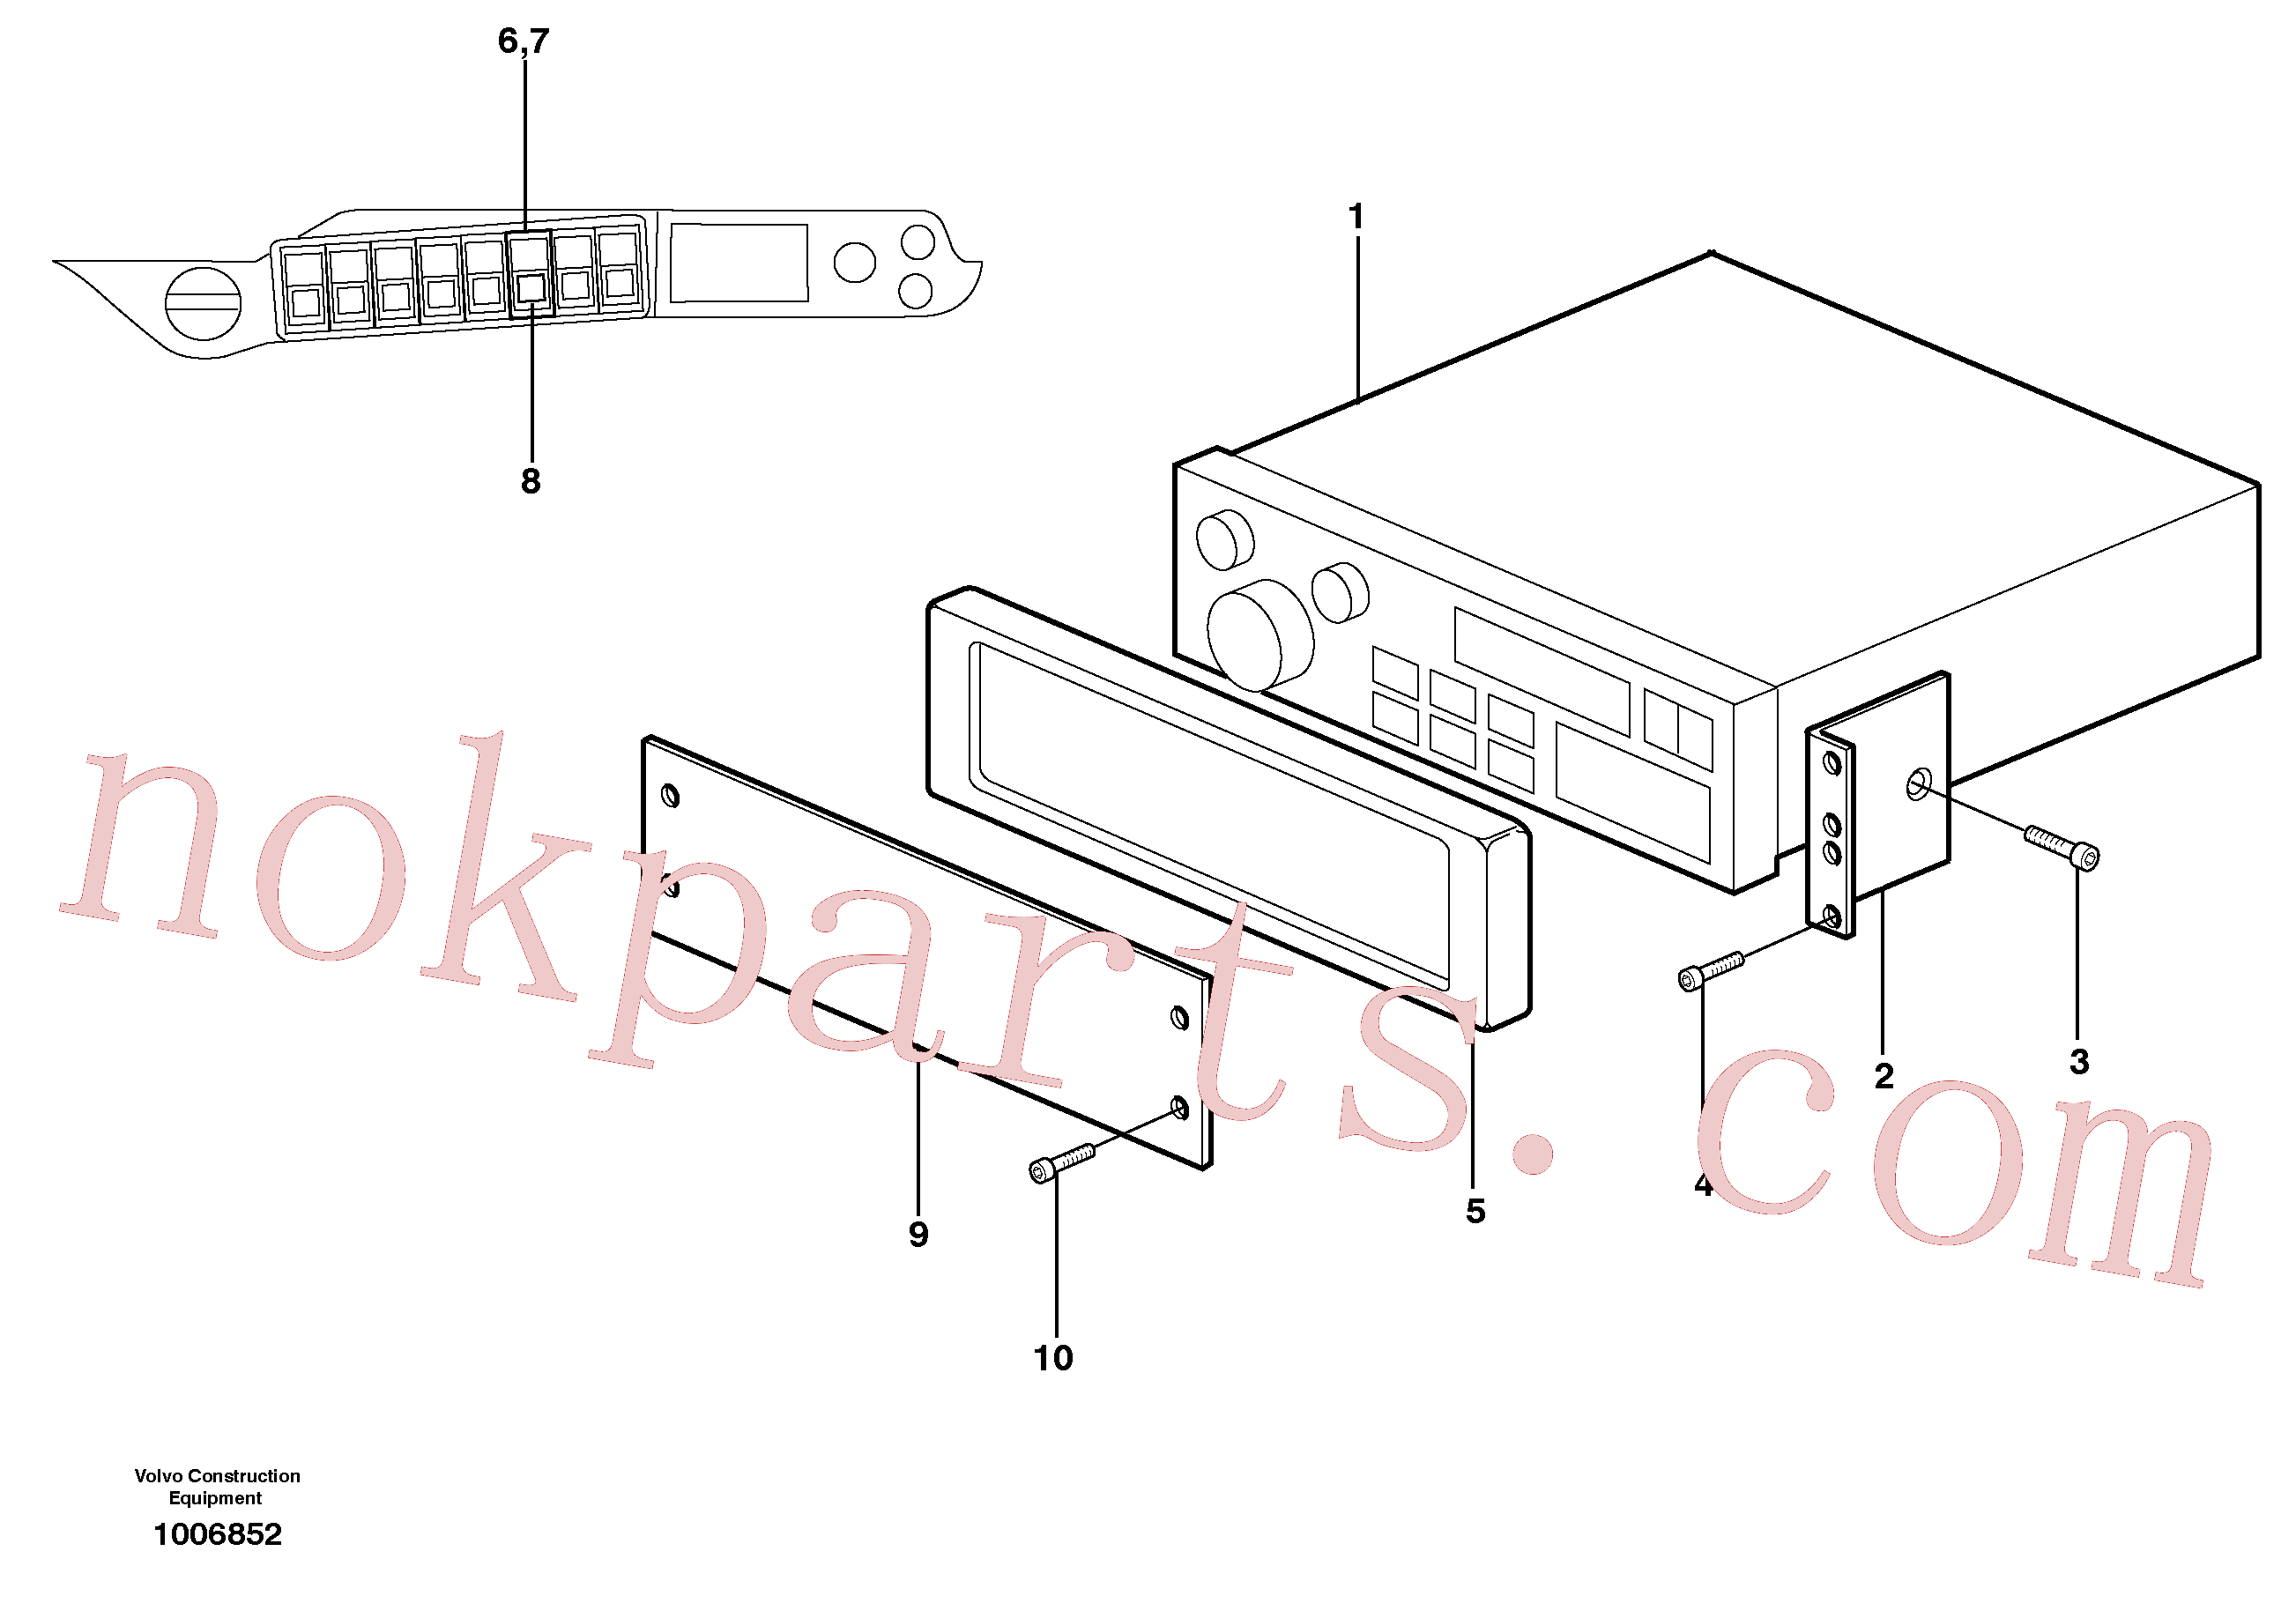 VOE13969514 for Volvo Radio installation with converter(1006852 assembly)